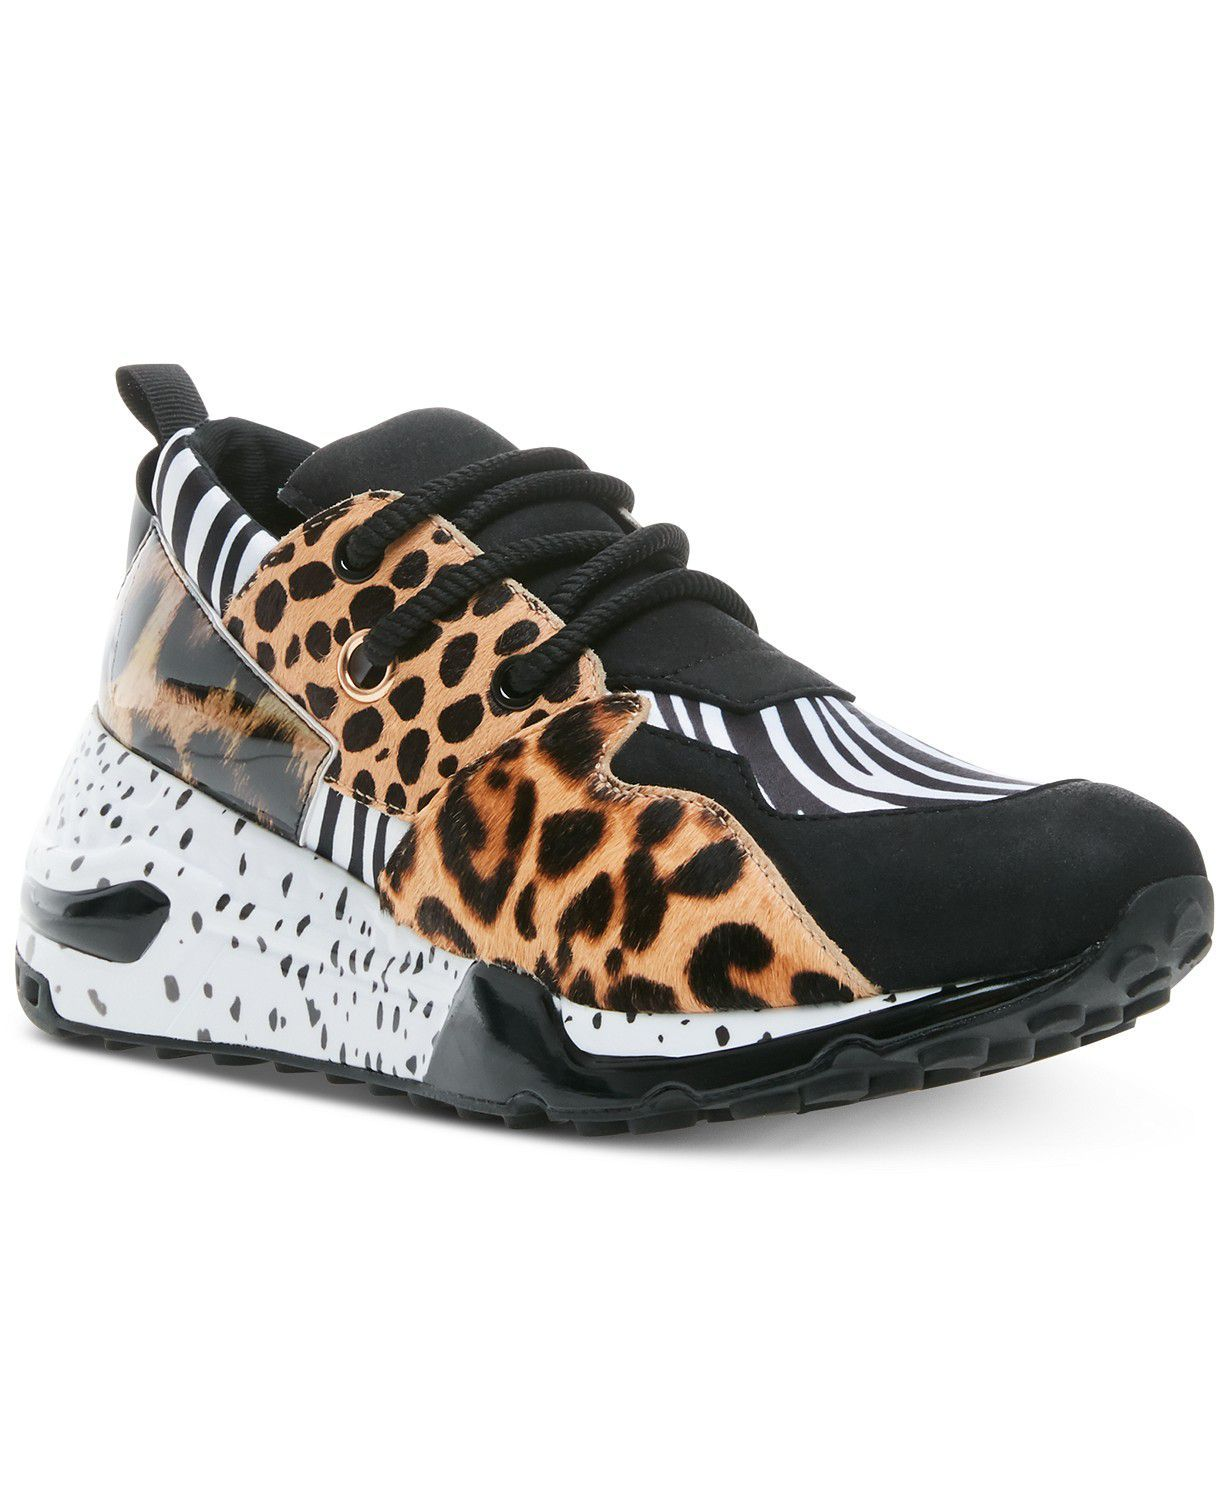 Statement Sneakers Steve Madden macys.com $99.00 SHOP NOW There's a reason multiple people on the team said their out-there sneakers always get people talking. Comfortable to wear, this animal print mix definitely doesn't belong at the gym.